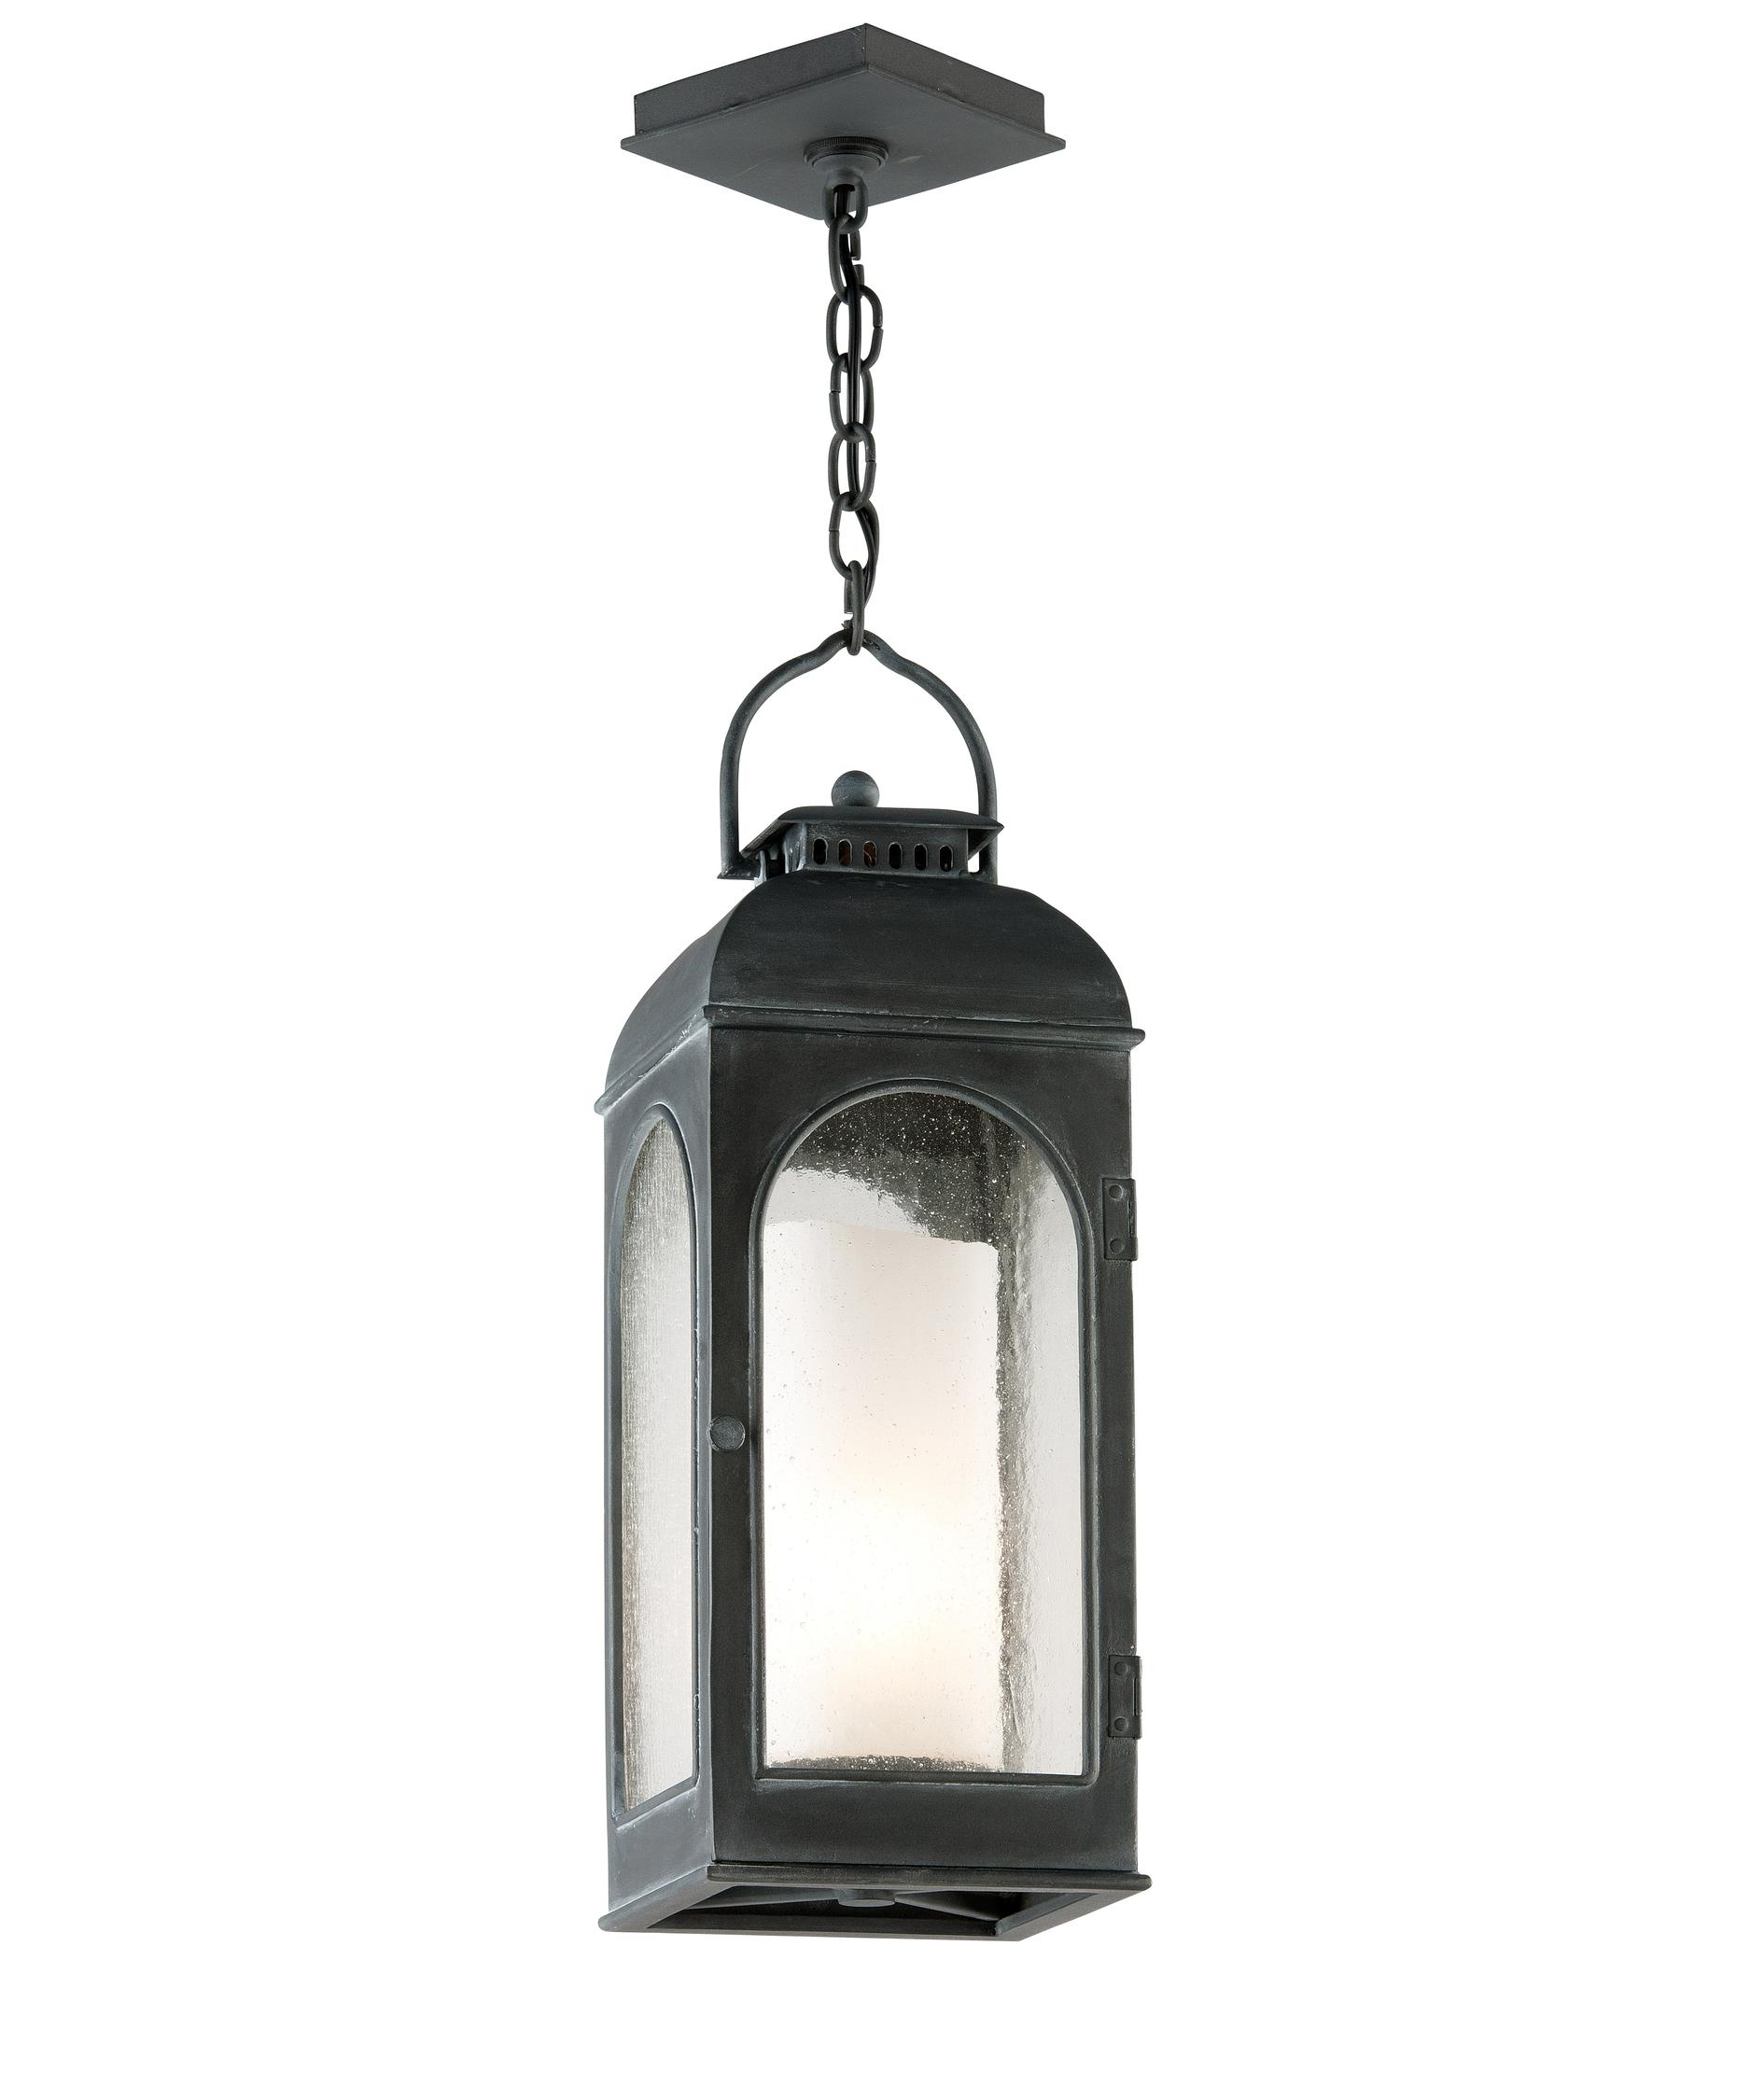 Widely Used Troy Lighting F3287 Derby 8 Inch Wide 1 Light Outdoor Hanging Pertaining To Outdoor Hanging Lanterns For Candles (View 20 of 20)